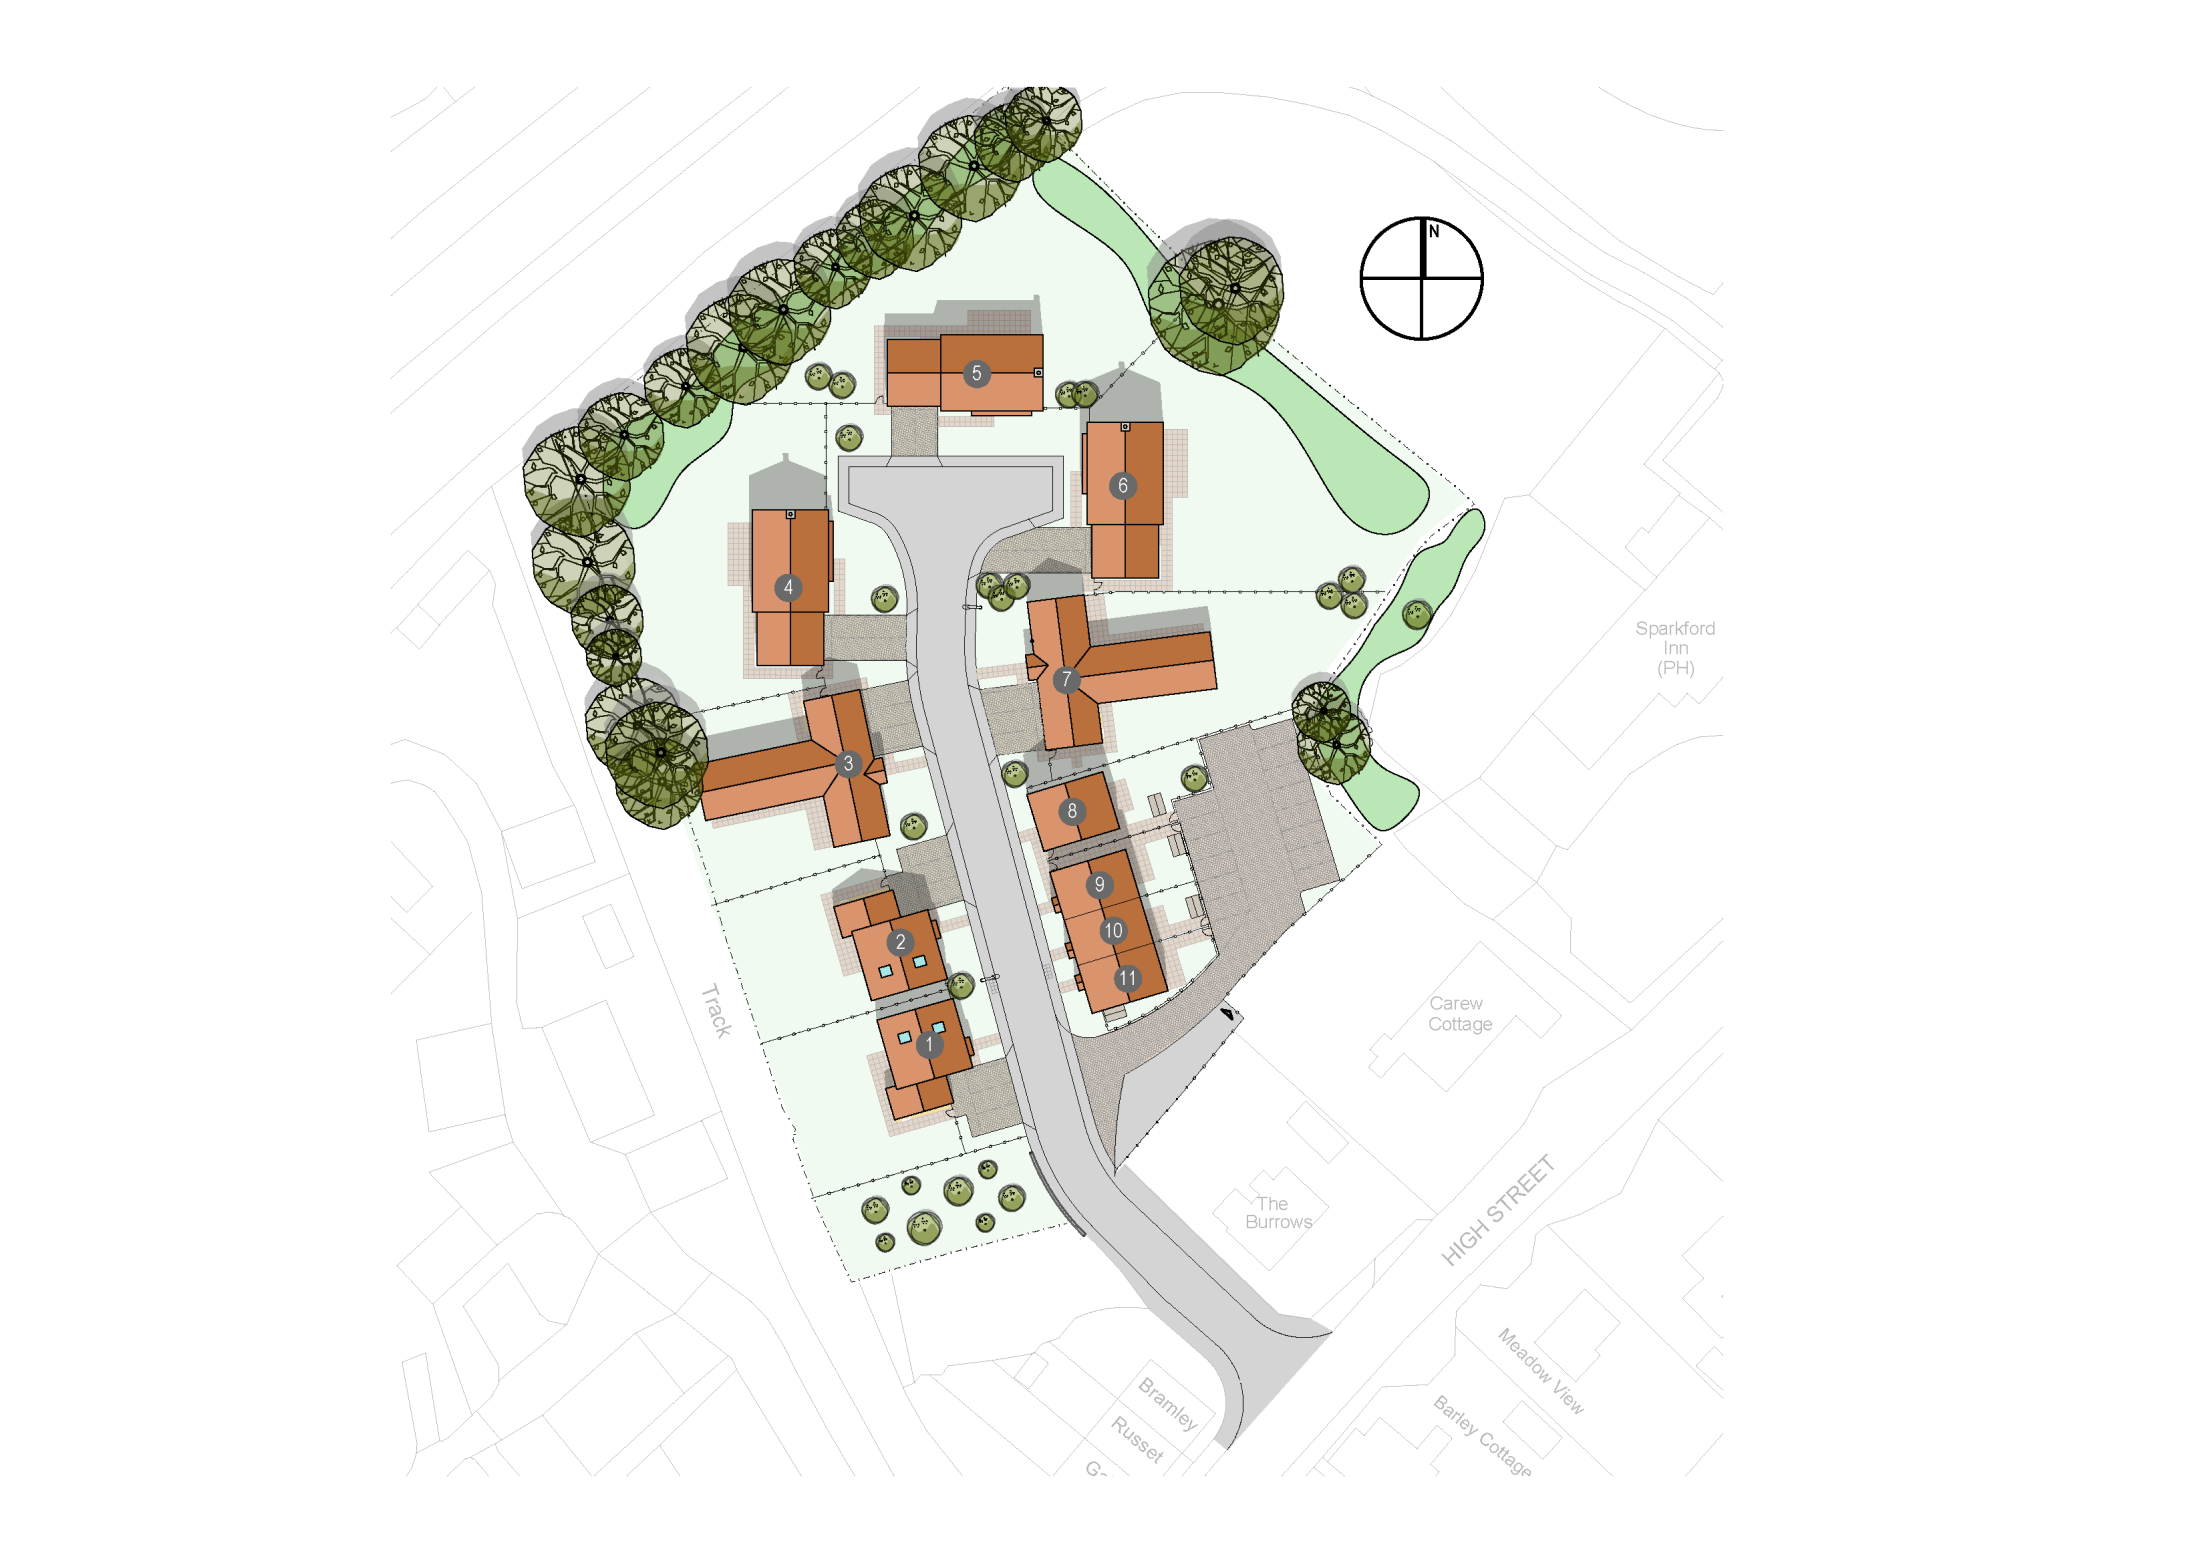 The Burrows site plan